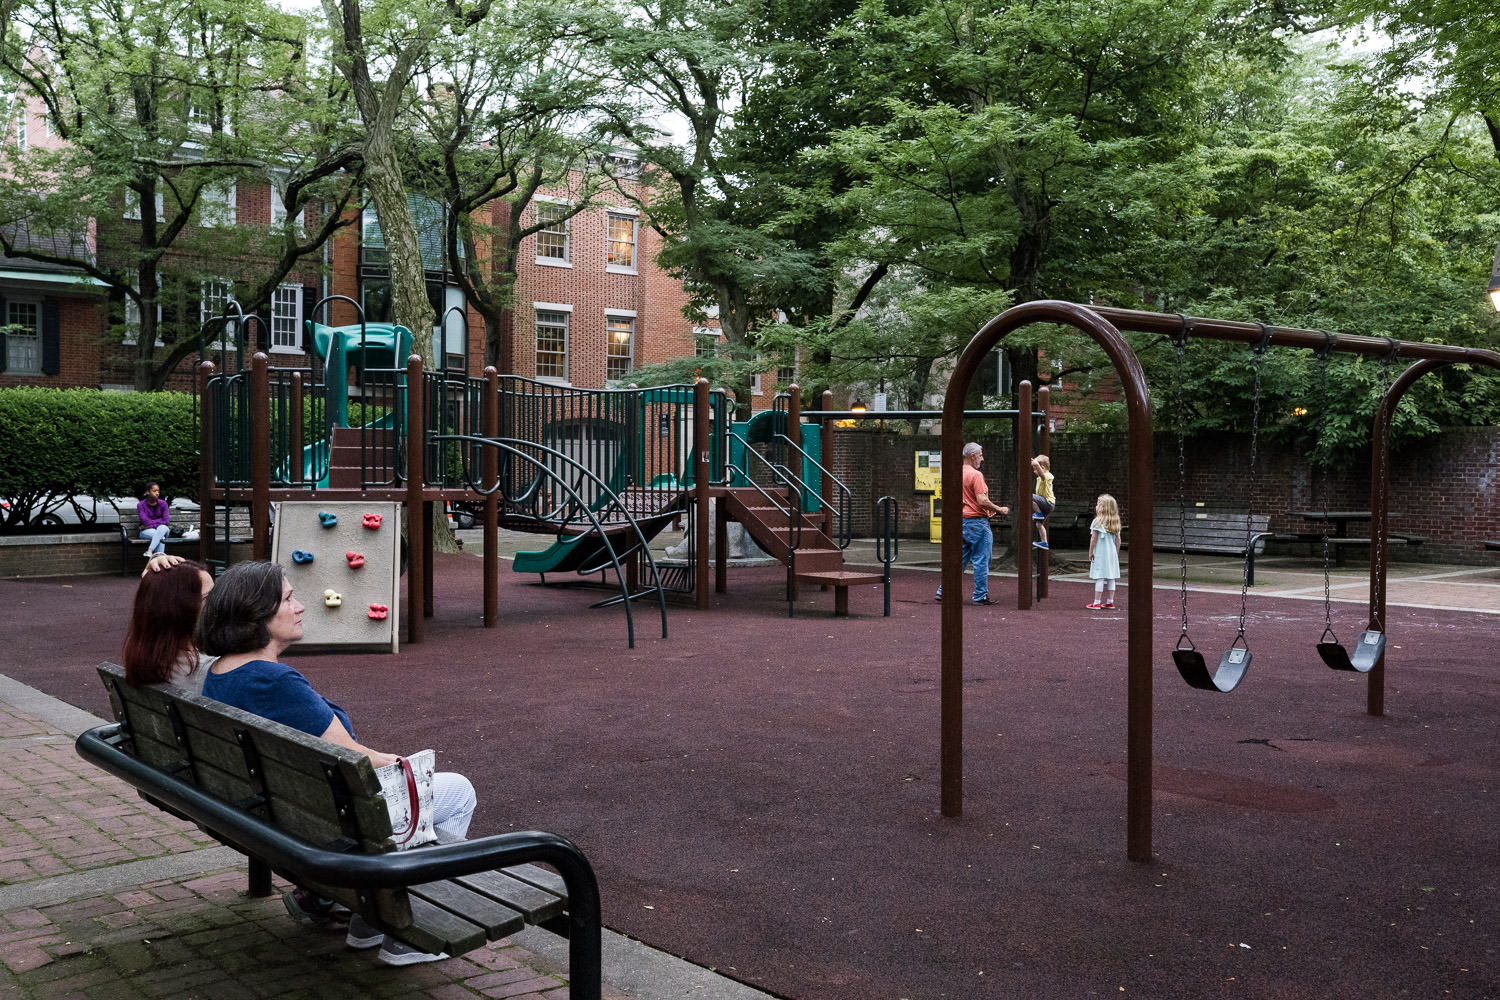 A family plays at a Philadelphia playground.